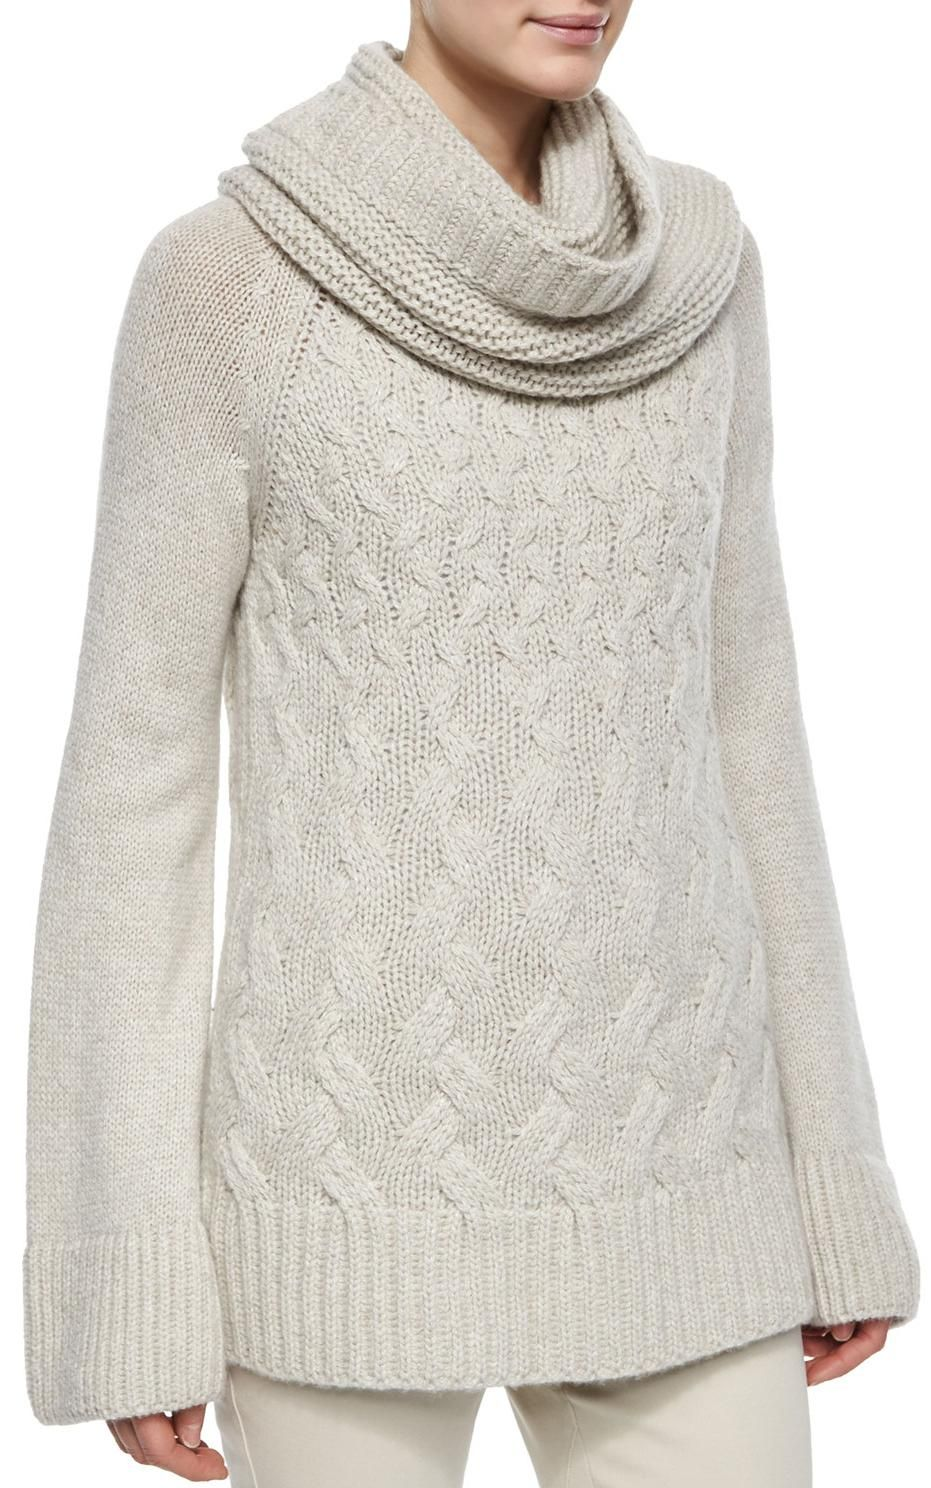 Loro Piana - cashmere chunky cable knit sweater | 3A - sweaters ...